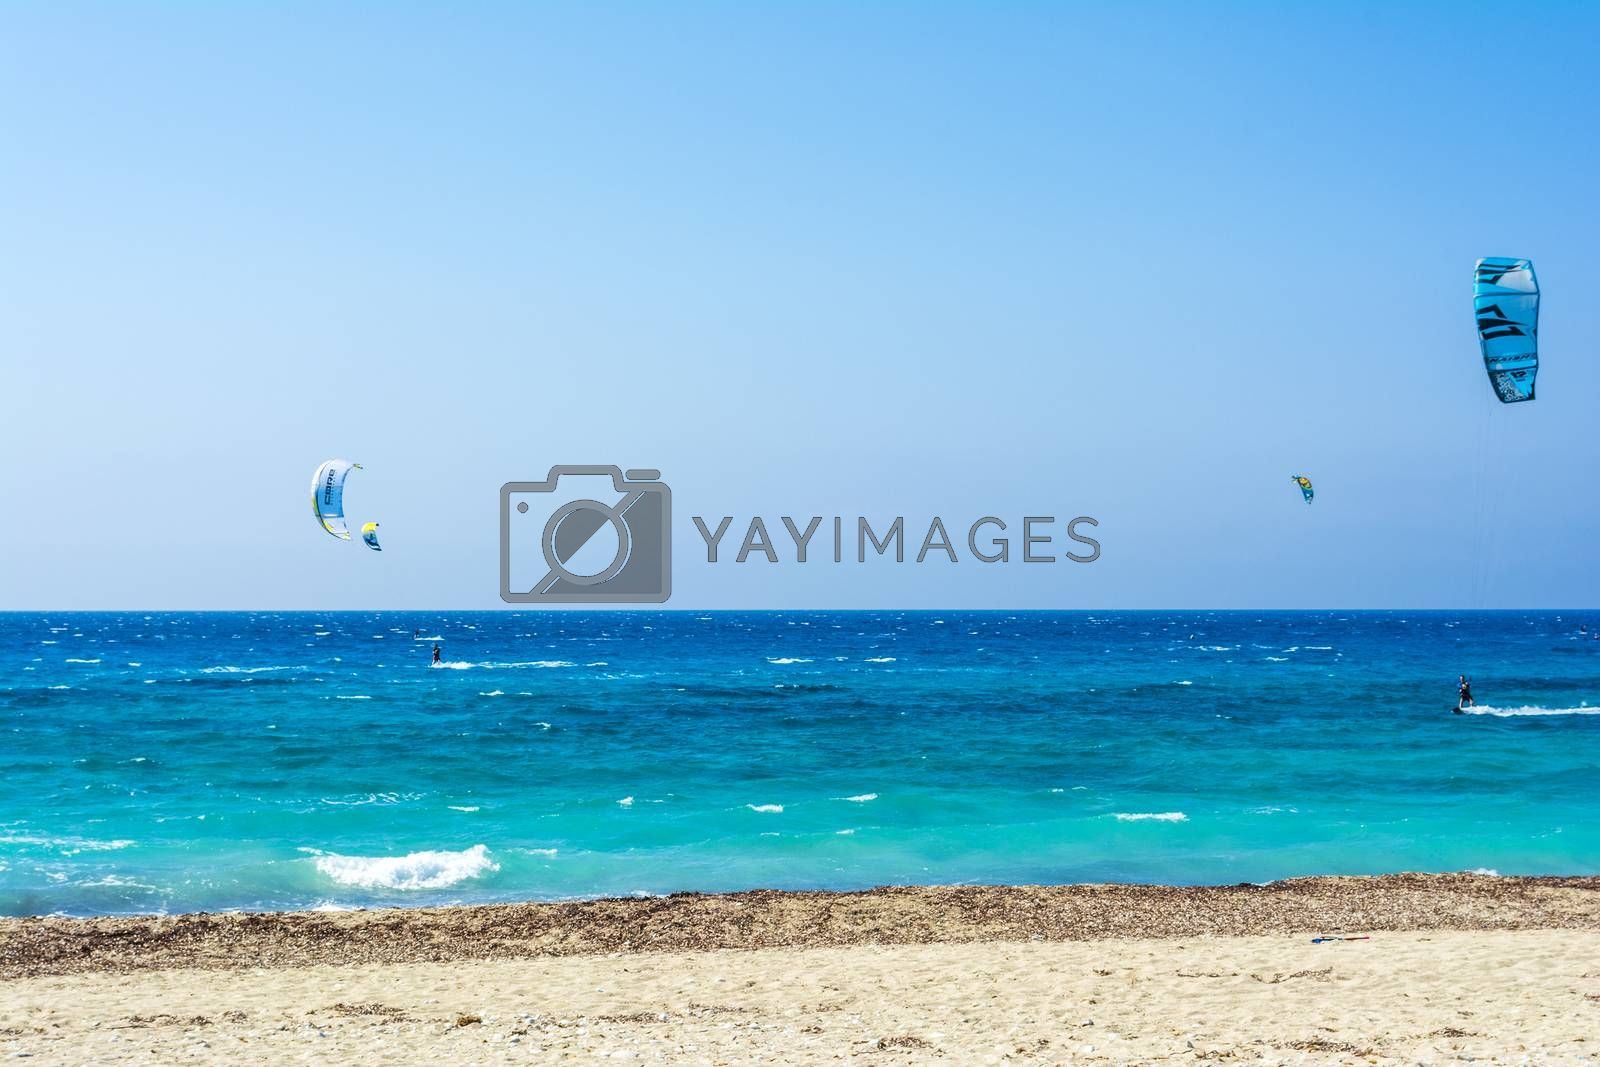 Agios Ioannis beach in Lefkas island Greece. Colorful power kites span across the sky from kite-surfers.